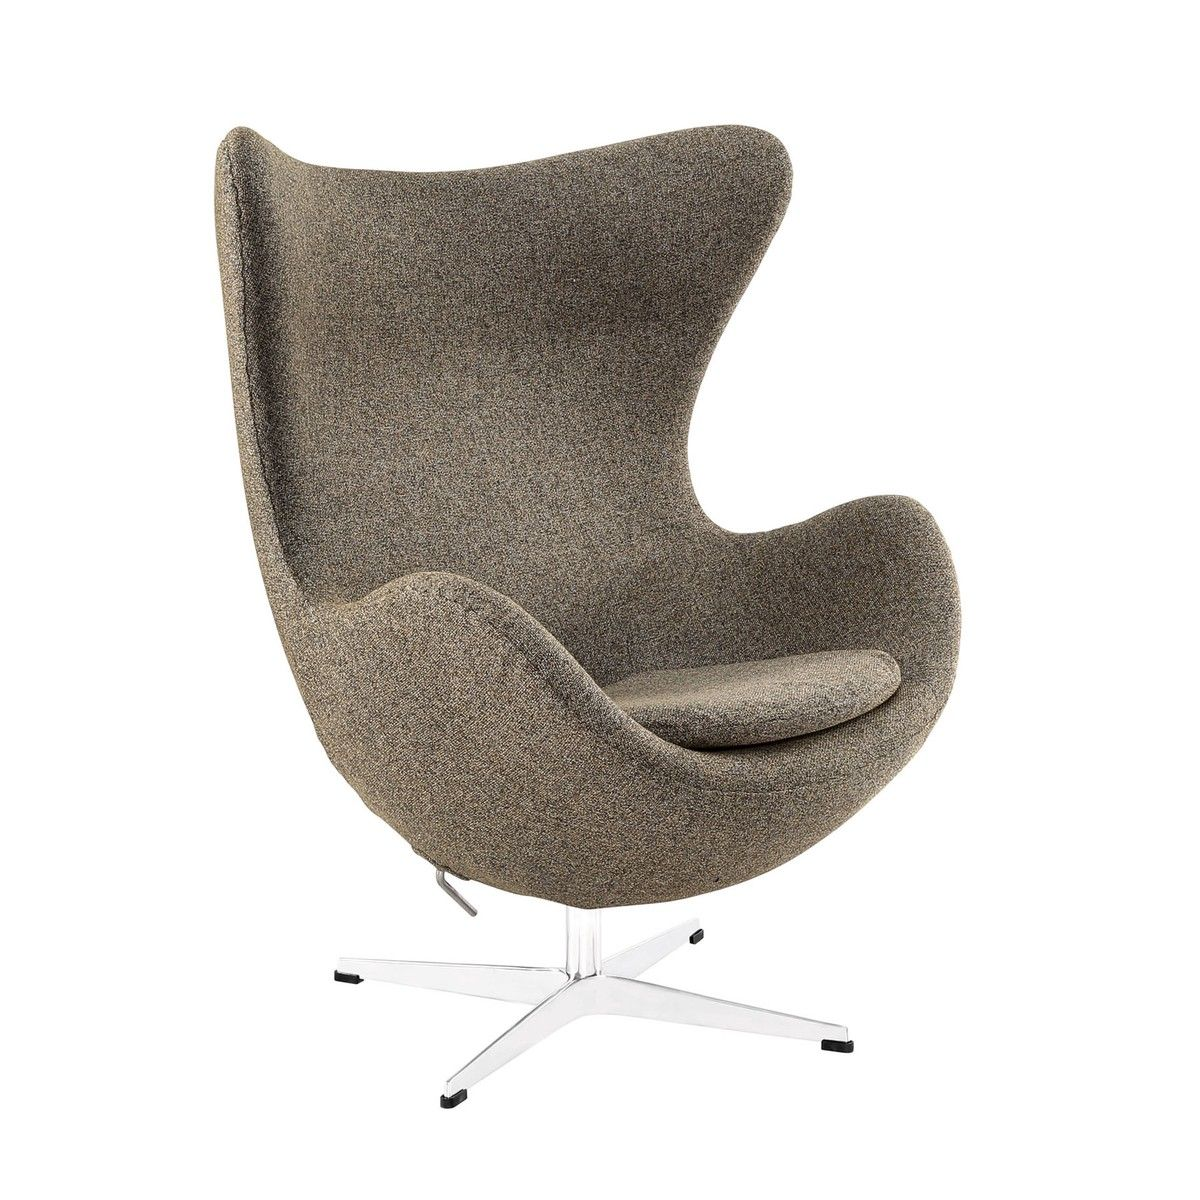 Arne Jacobsen Egg Chair Tweedehands.The Wool Cell Chair Makes A Bold Statement In Any Room One Day I